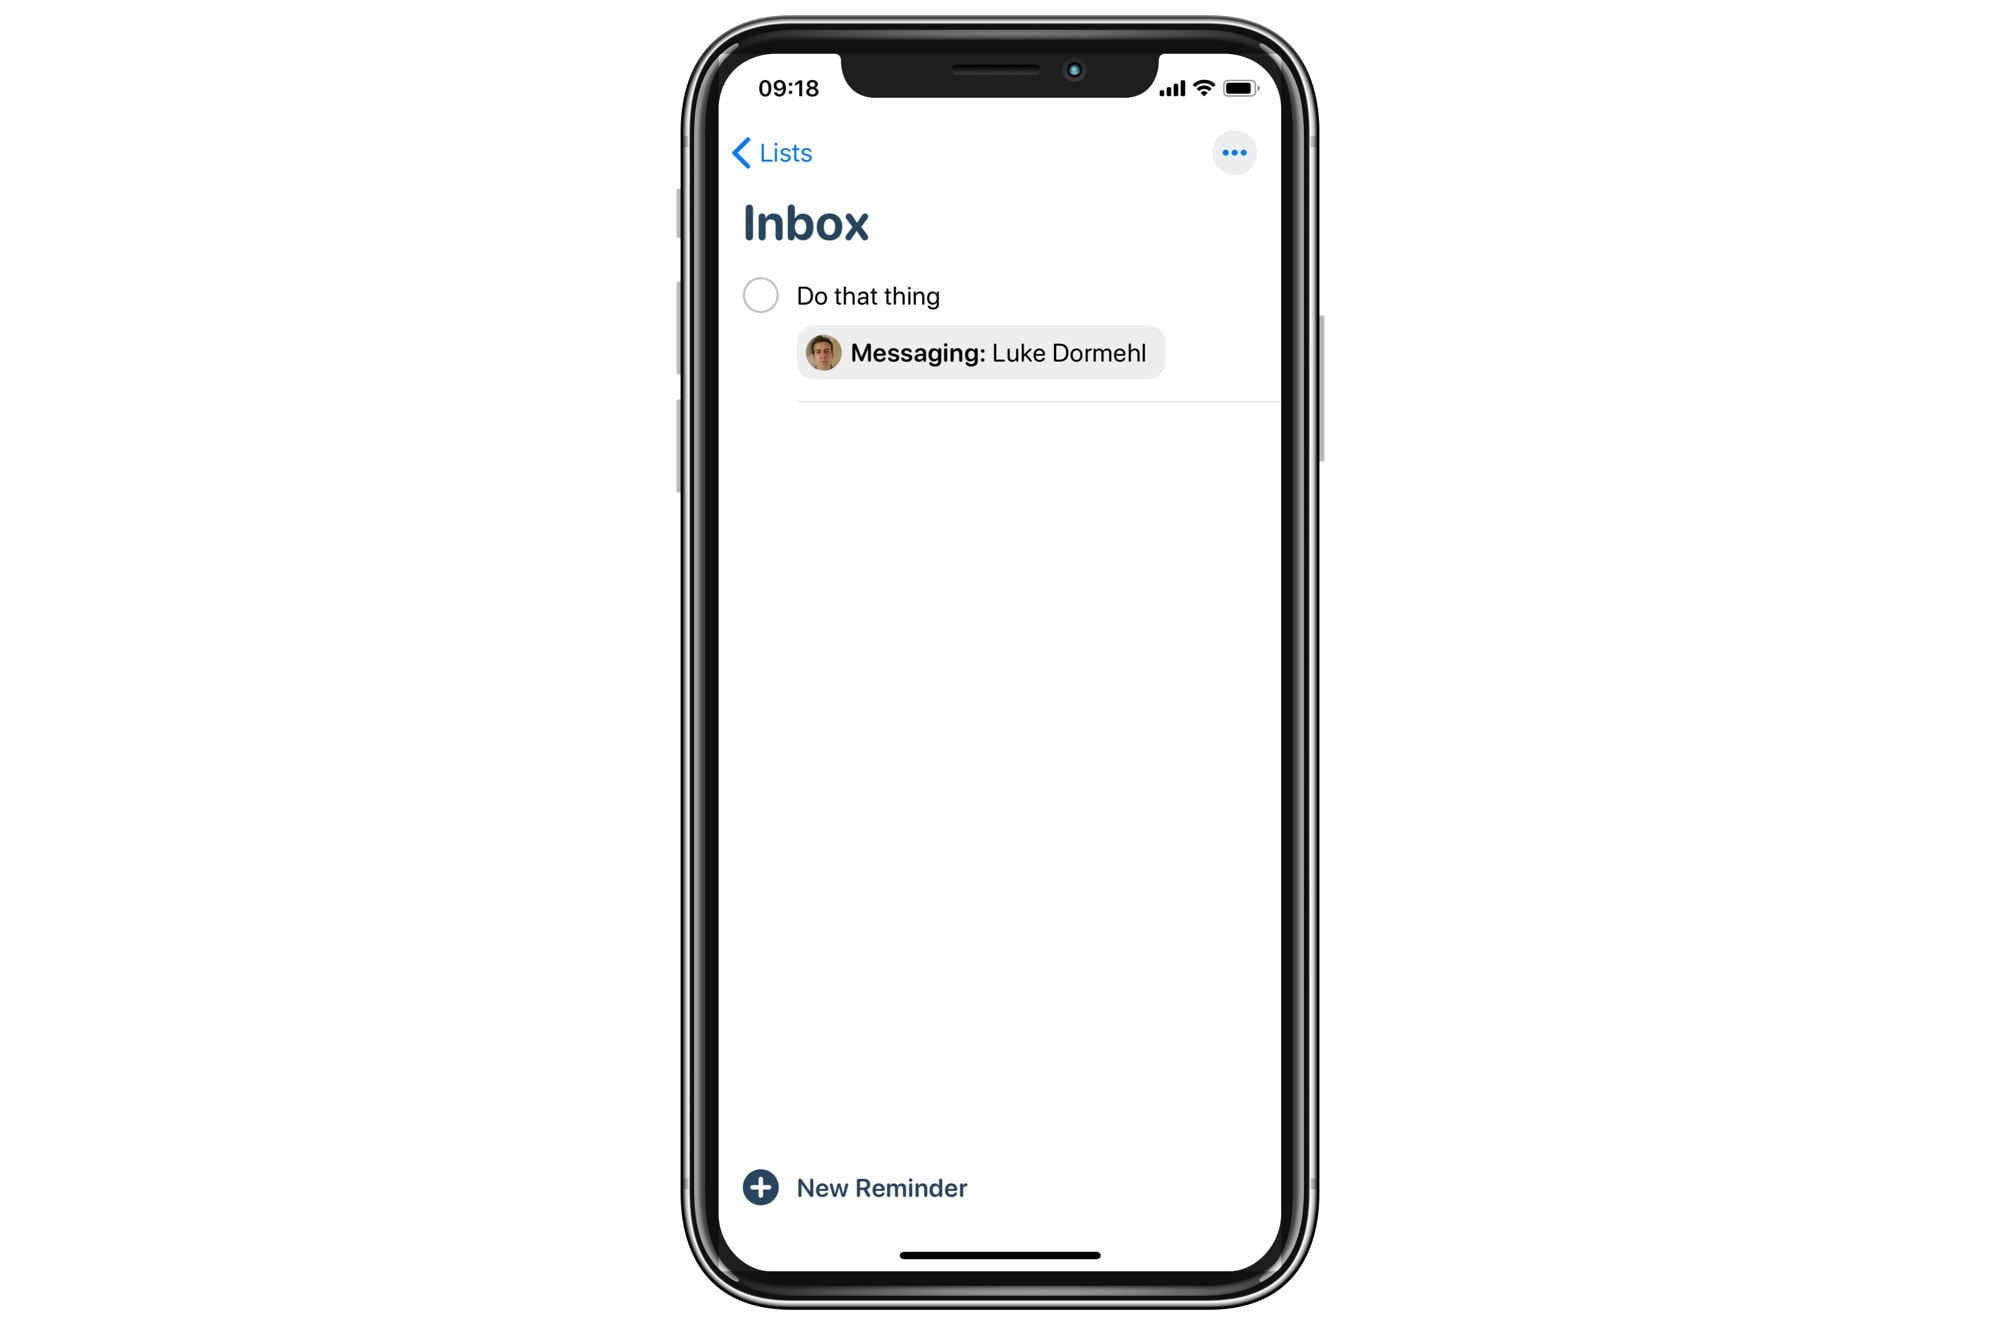 Your reminders lists show attached contacts.